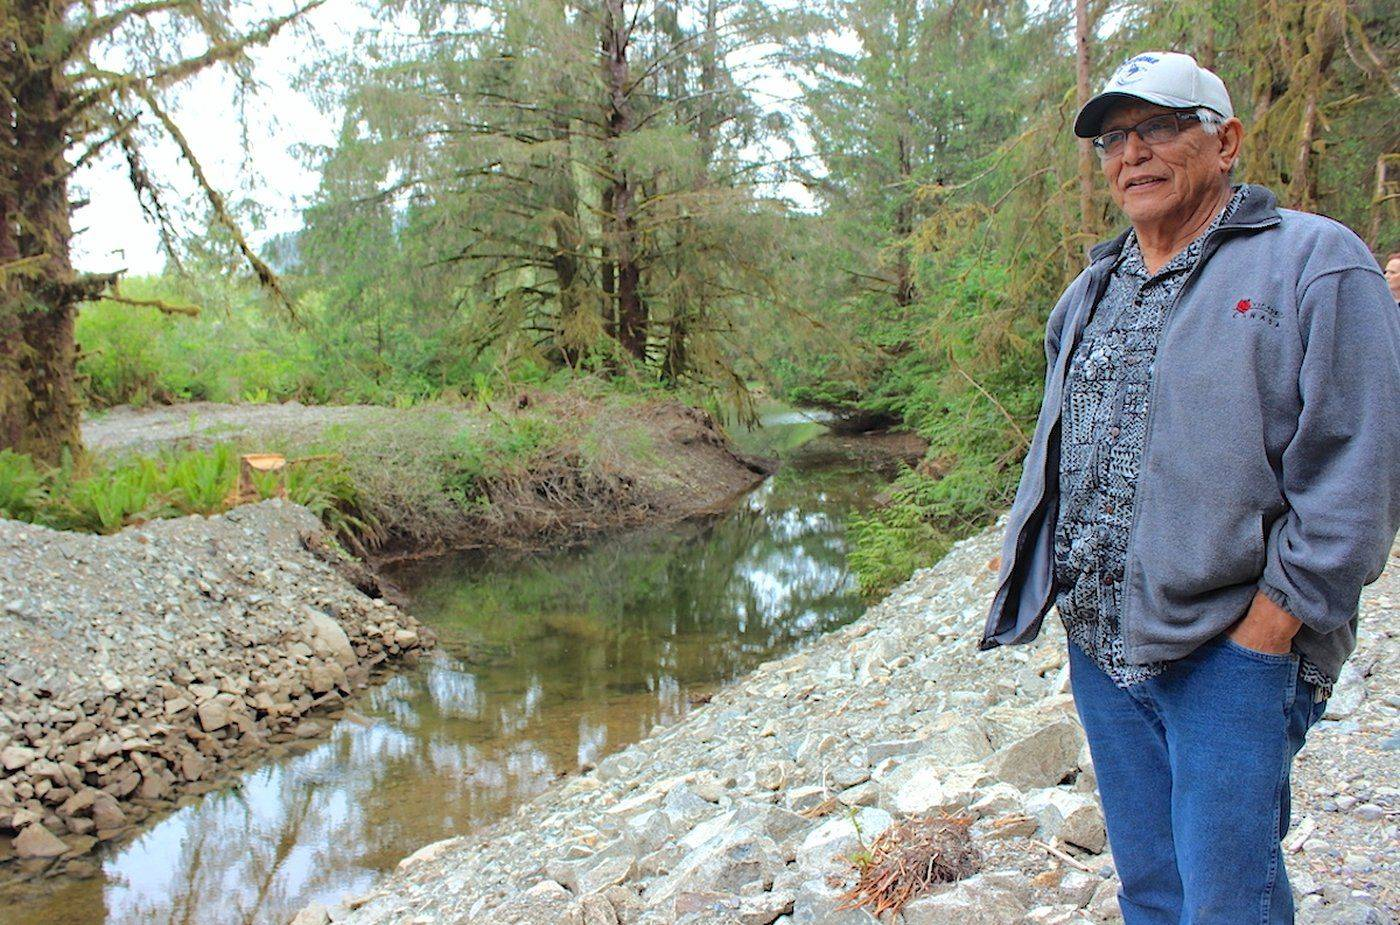 By protesting uninvited in First Nations' territories, conservationists are acting in a neocolonial or paternalistic manner, says Huu-ay-aht Chief Robert Dennis. Photo by Heather Thomson